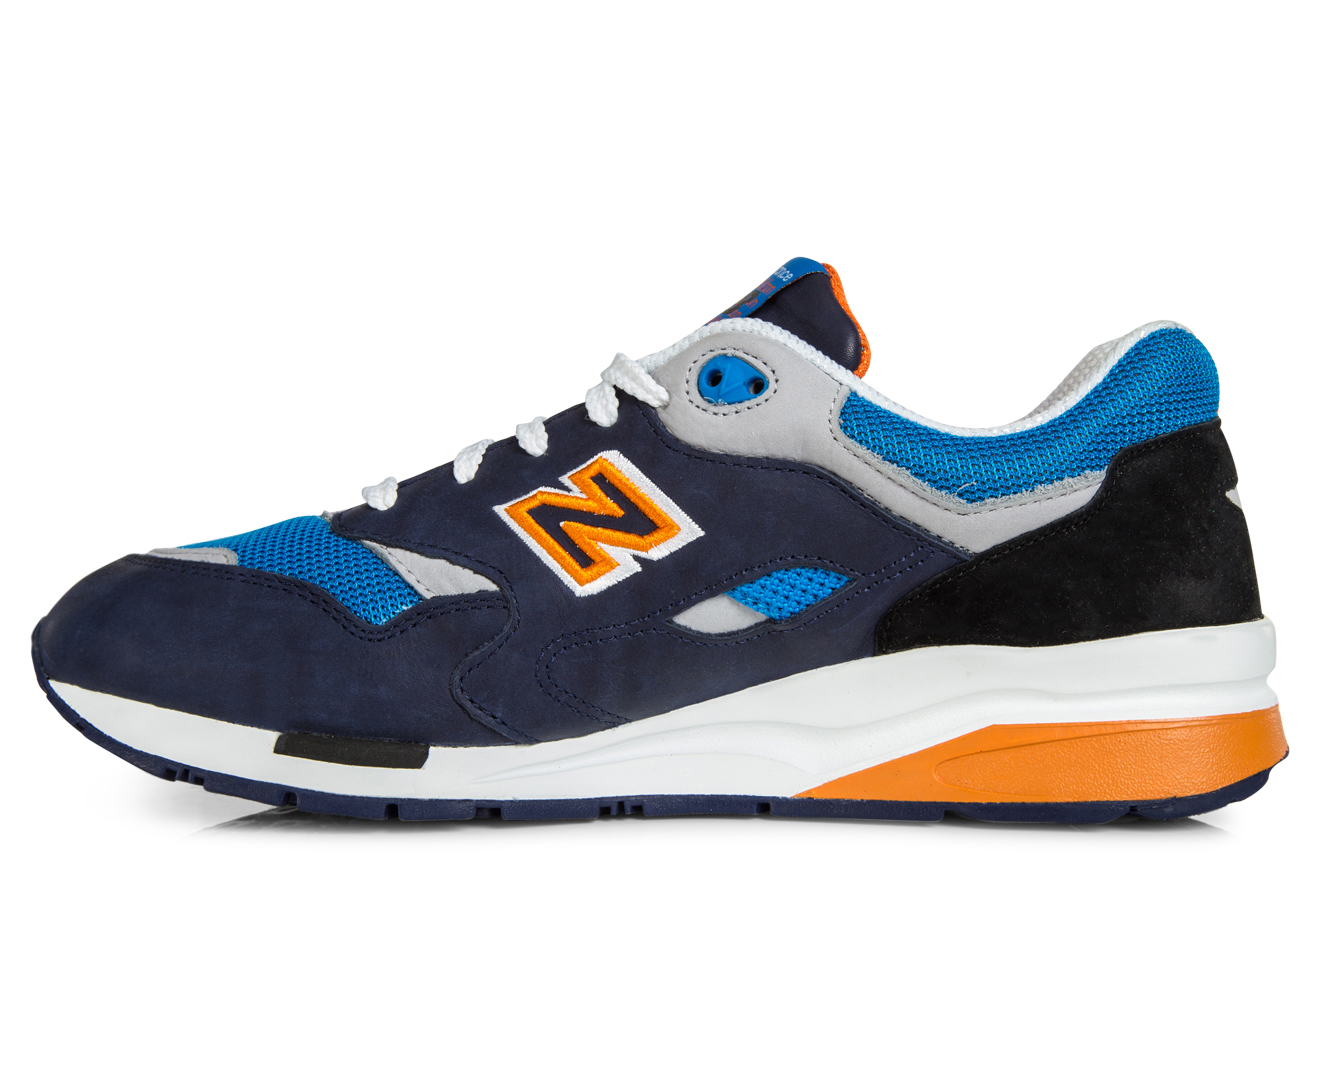 new balance 1600 elite edition for sale